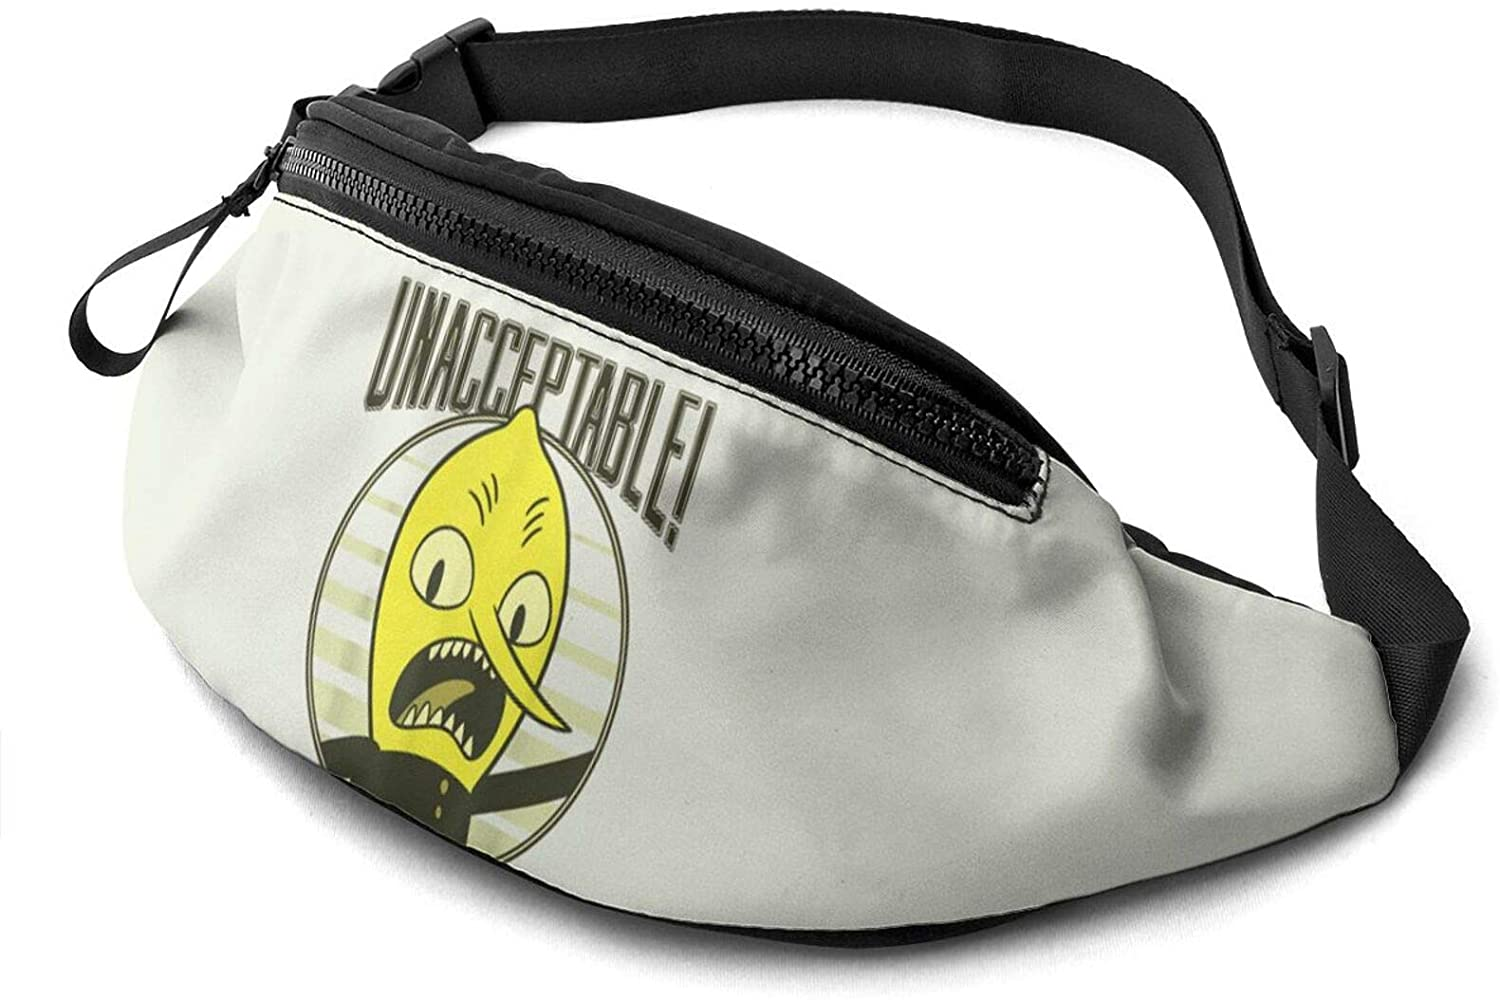 Atsh Lemongrab Waist Pack Bag Fanny Pack for Men Women Hip Bum Bag with Adjustable Strap Fashionable and Convenient